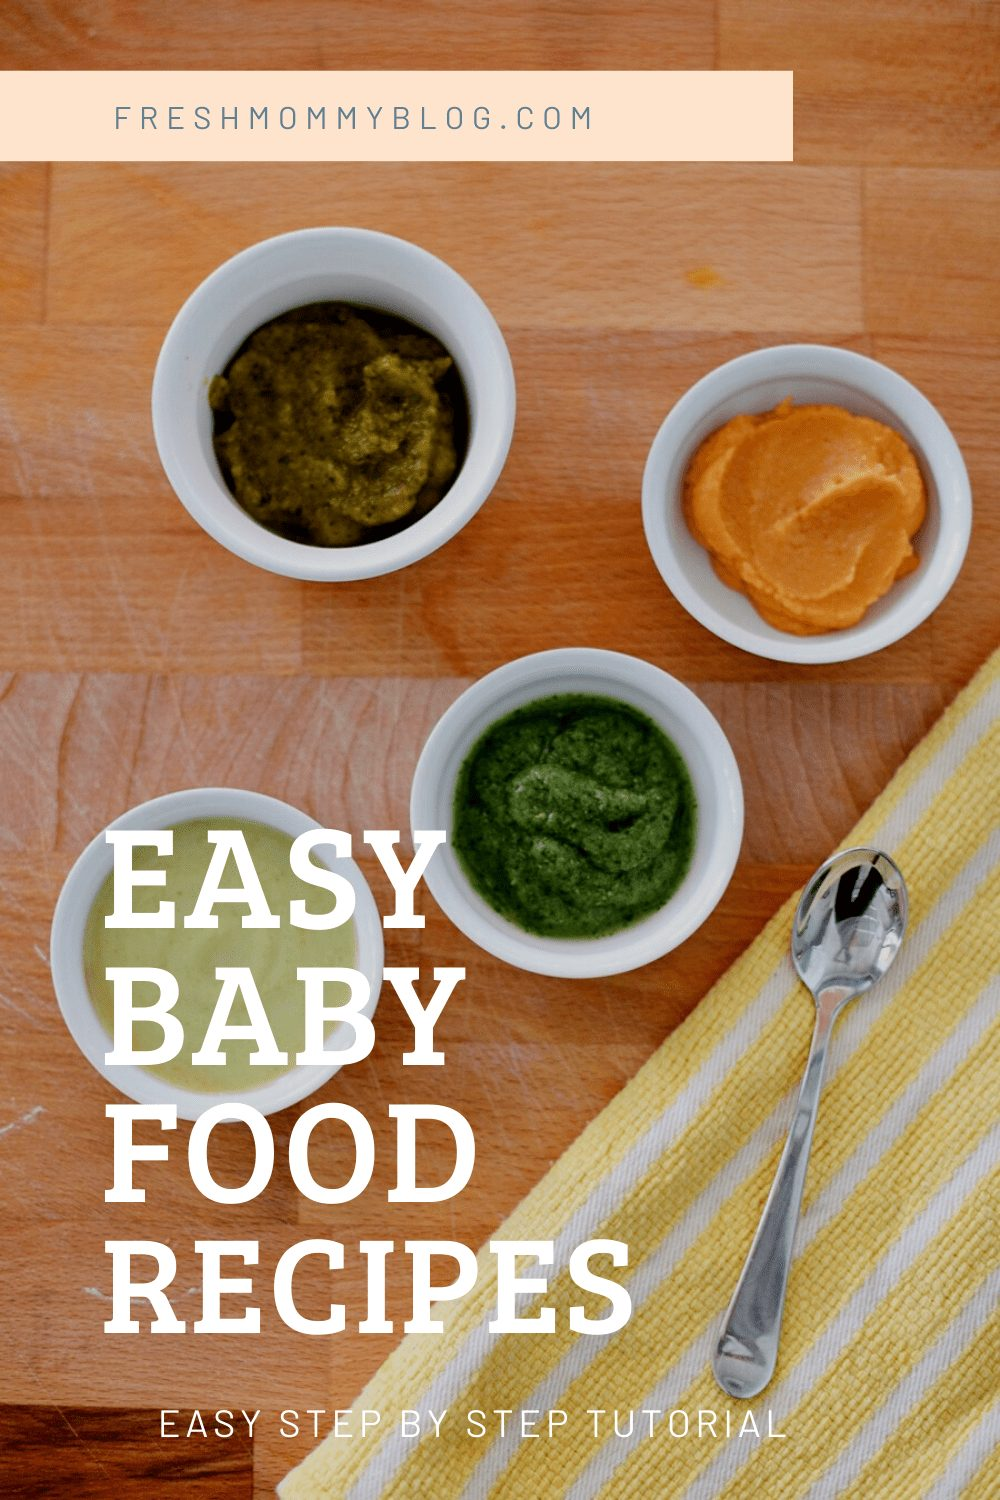 A HUGE benefit of making your own homemade baby food, besides the huge cost savings you'll see, is that you can adjust flavors based on your kid's own pallets. Plus, you know exactly what is in the food that you're feeding them!